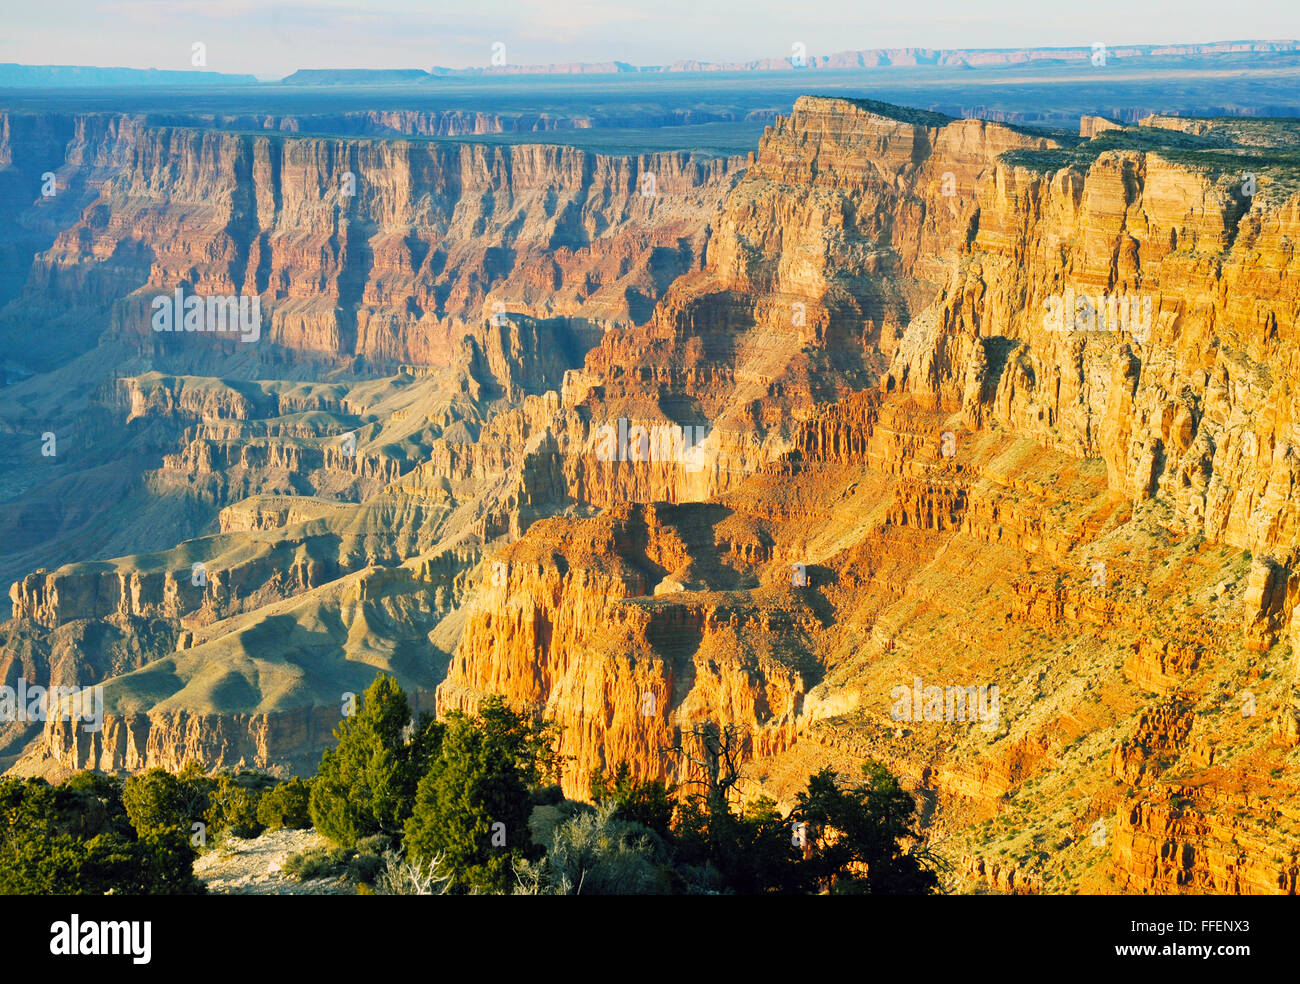 Grand Canyon is a steep-sided canyon carved by Colorado River in Arizona. Inhabited by Native American Indians, - Stock Image